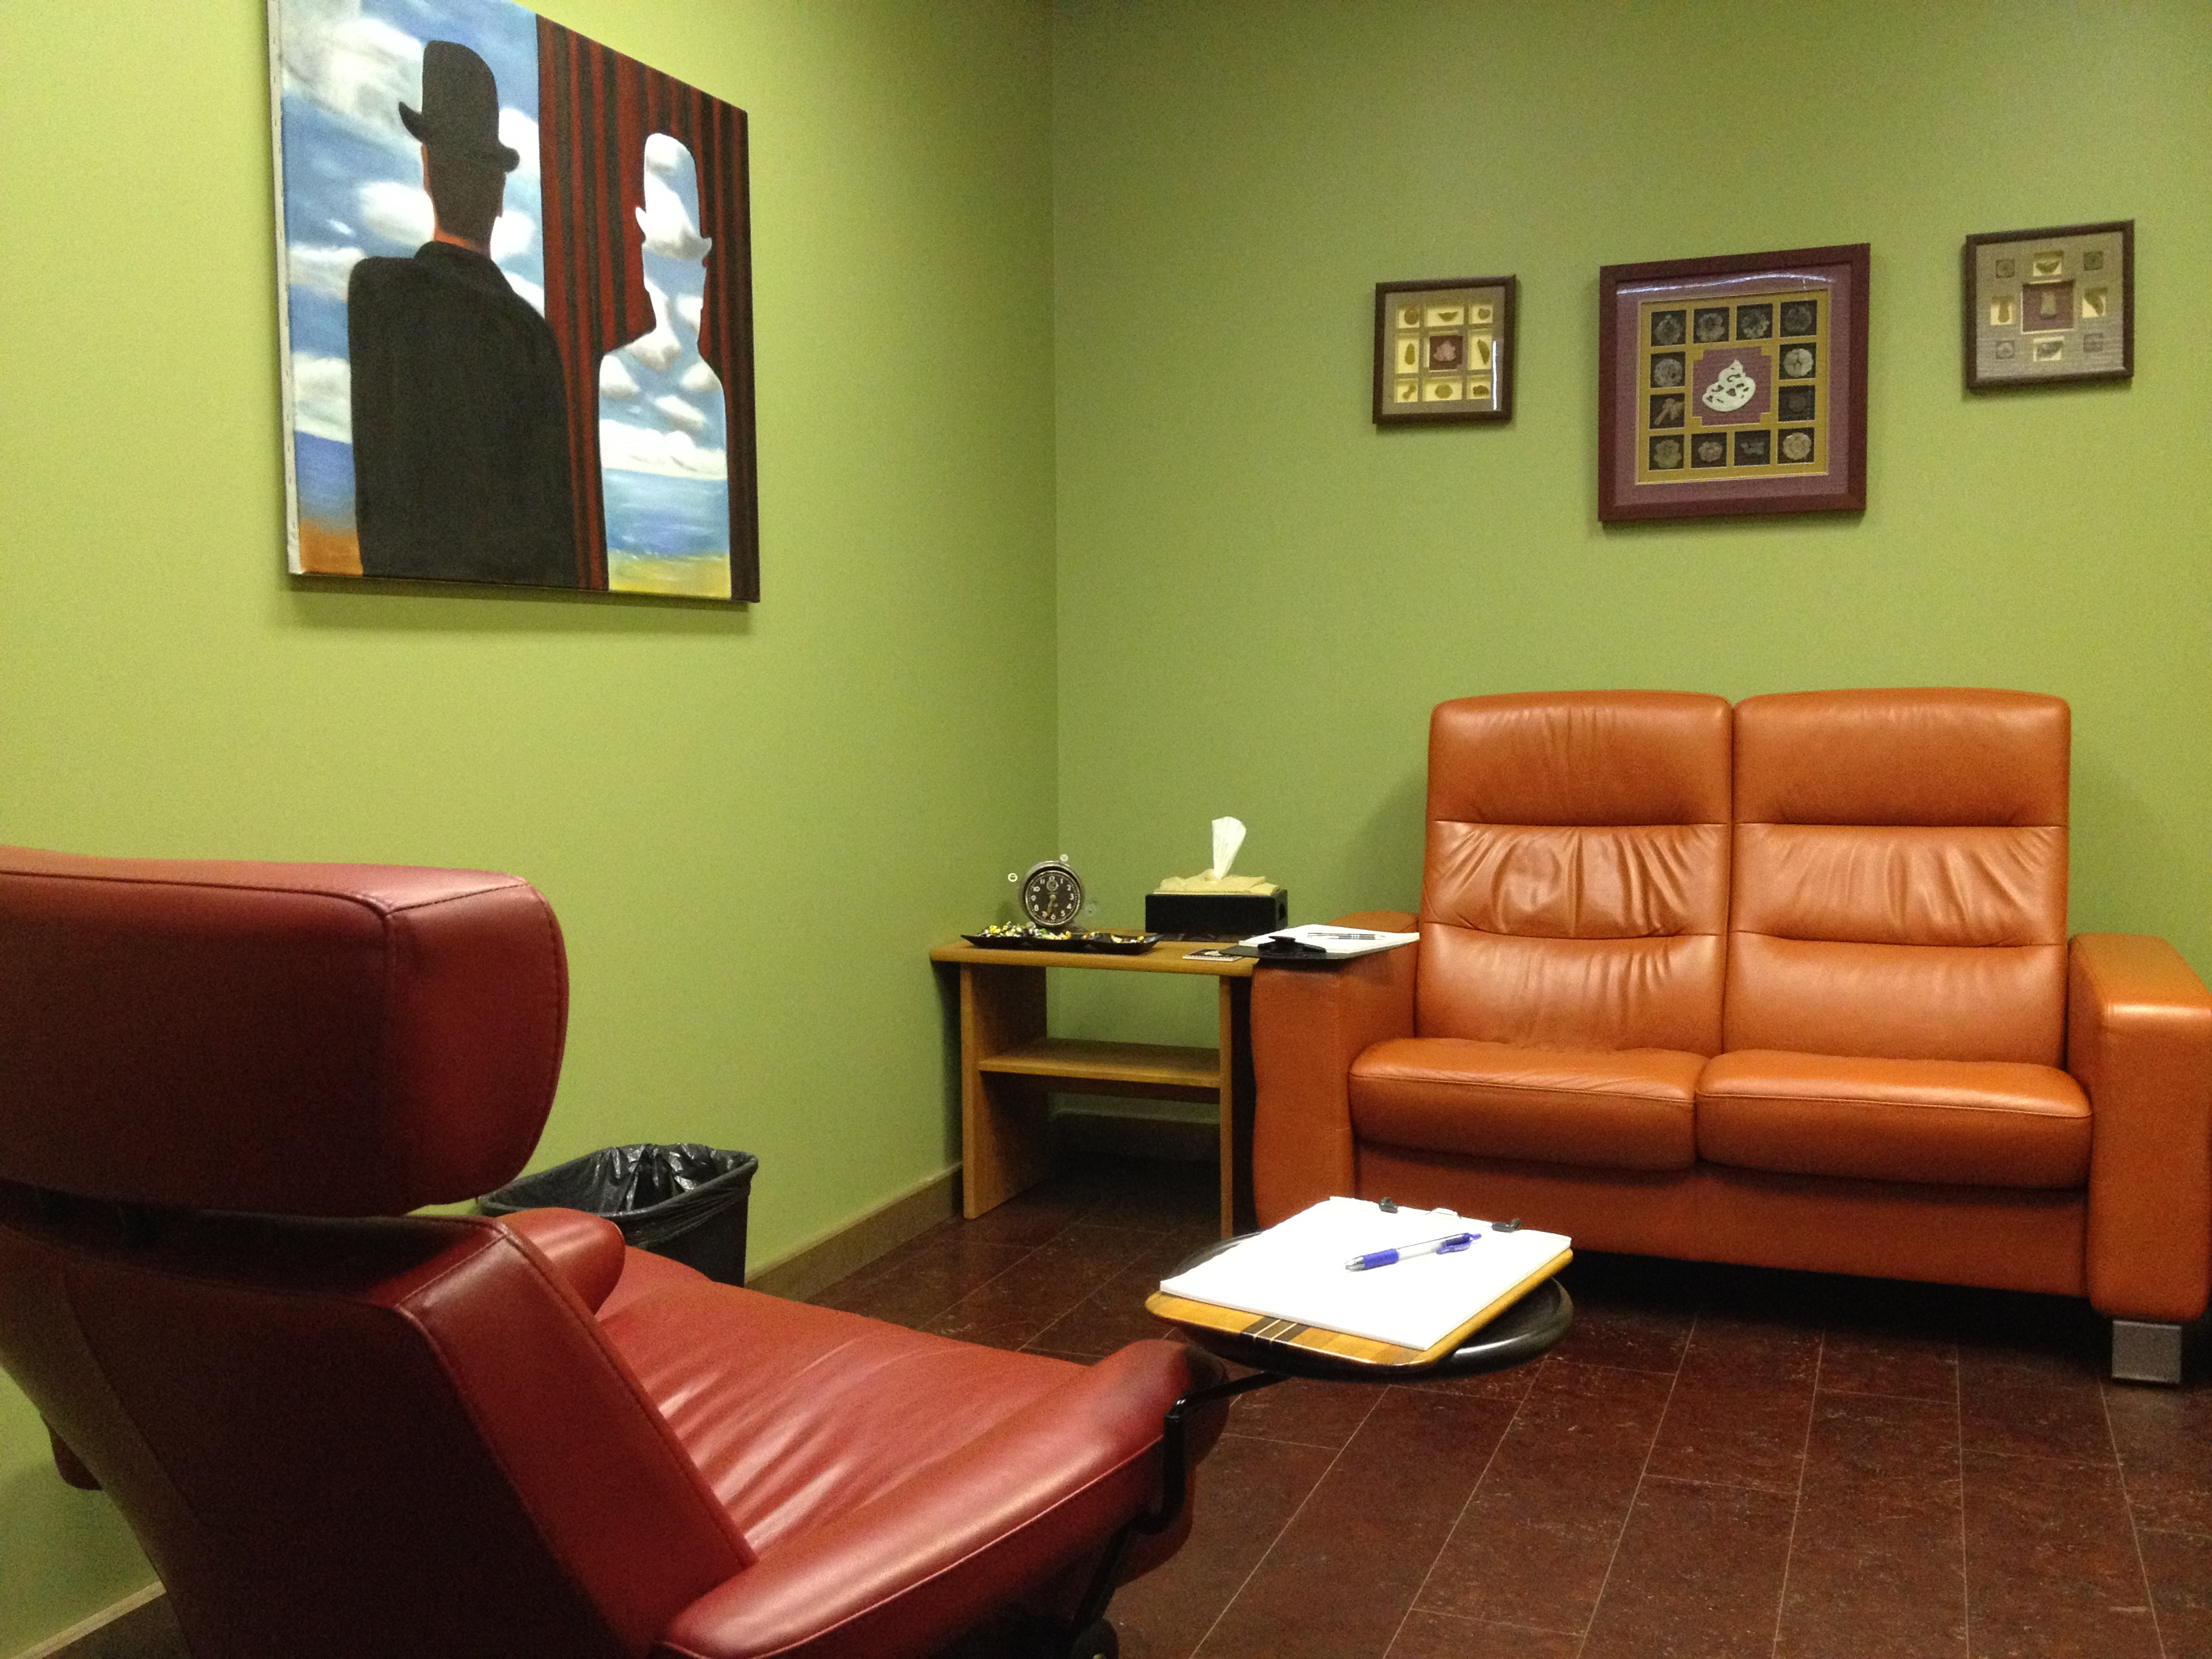 cbt toronto centre for cognitive behaviour therapy in ajax and cbt toronto